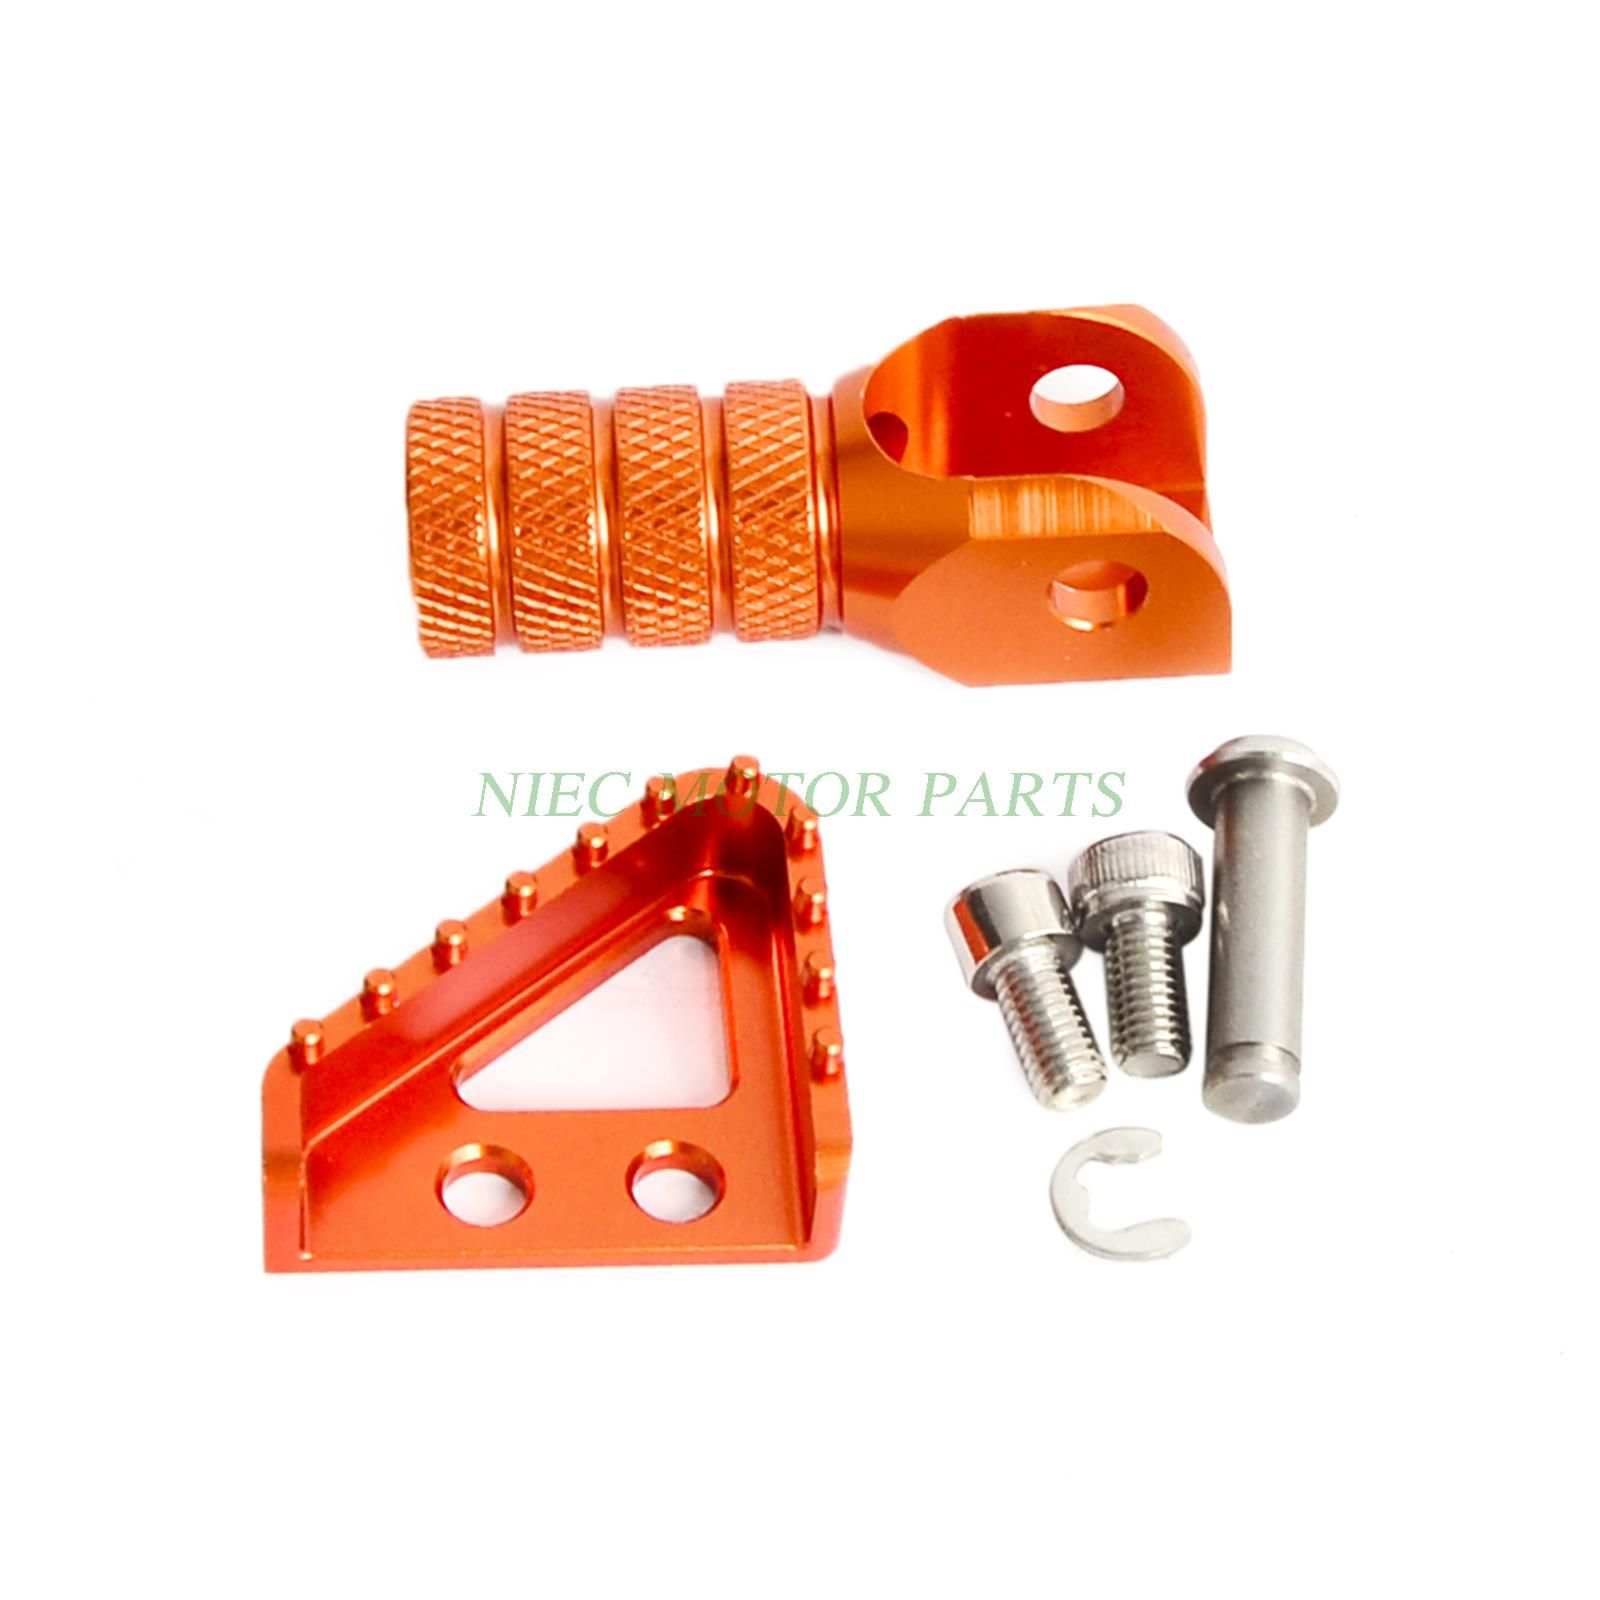 Rear Brake Pedal Step Tips And Gear Shifter Lever Tip For KTM 125 200 300 350 450 530 950 990 SX SX-F EXC EXC-F XCW XCF SMR SMC